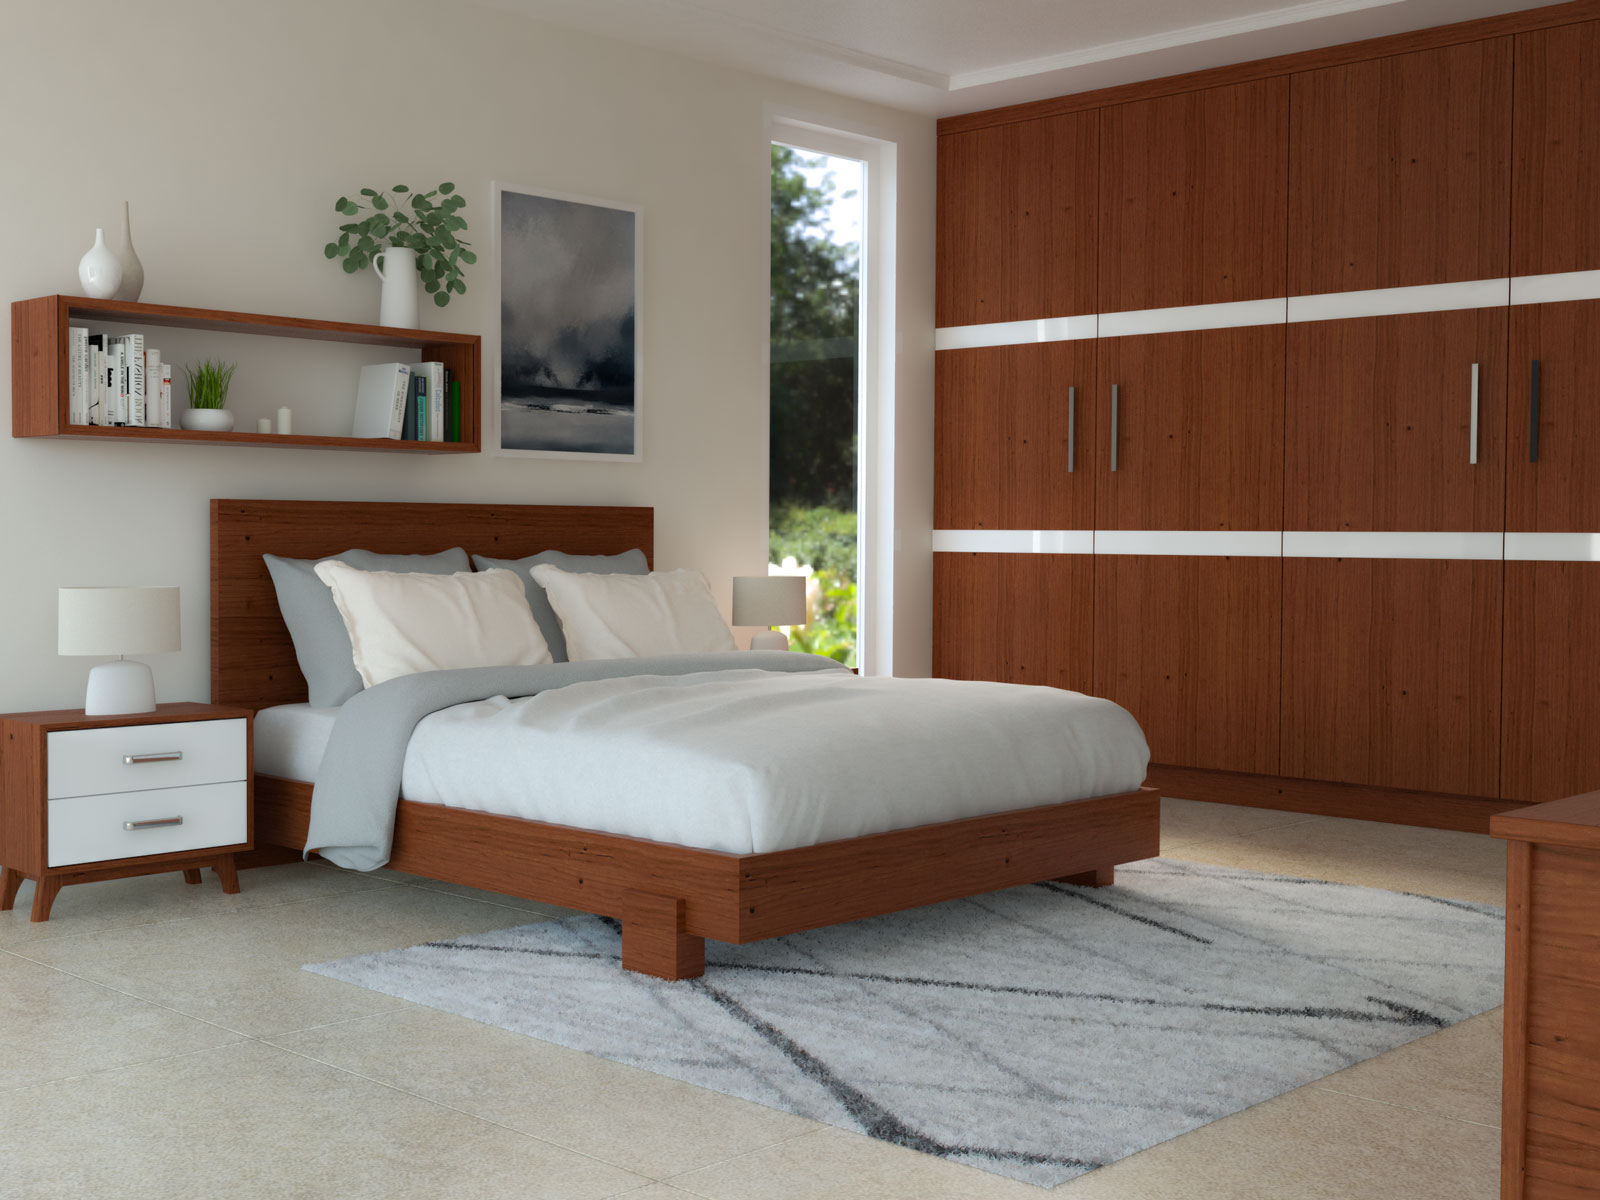 Cherry wood furniture with light gray rug